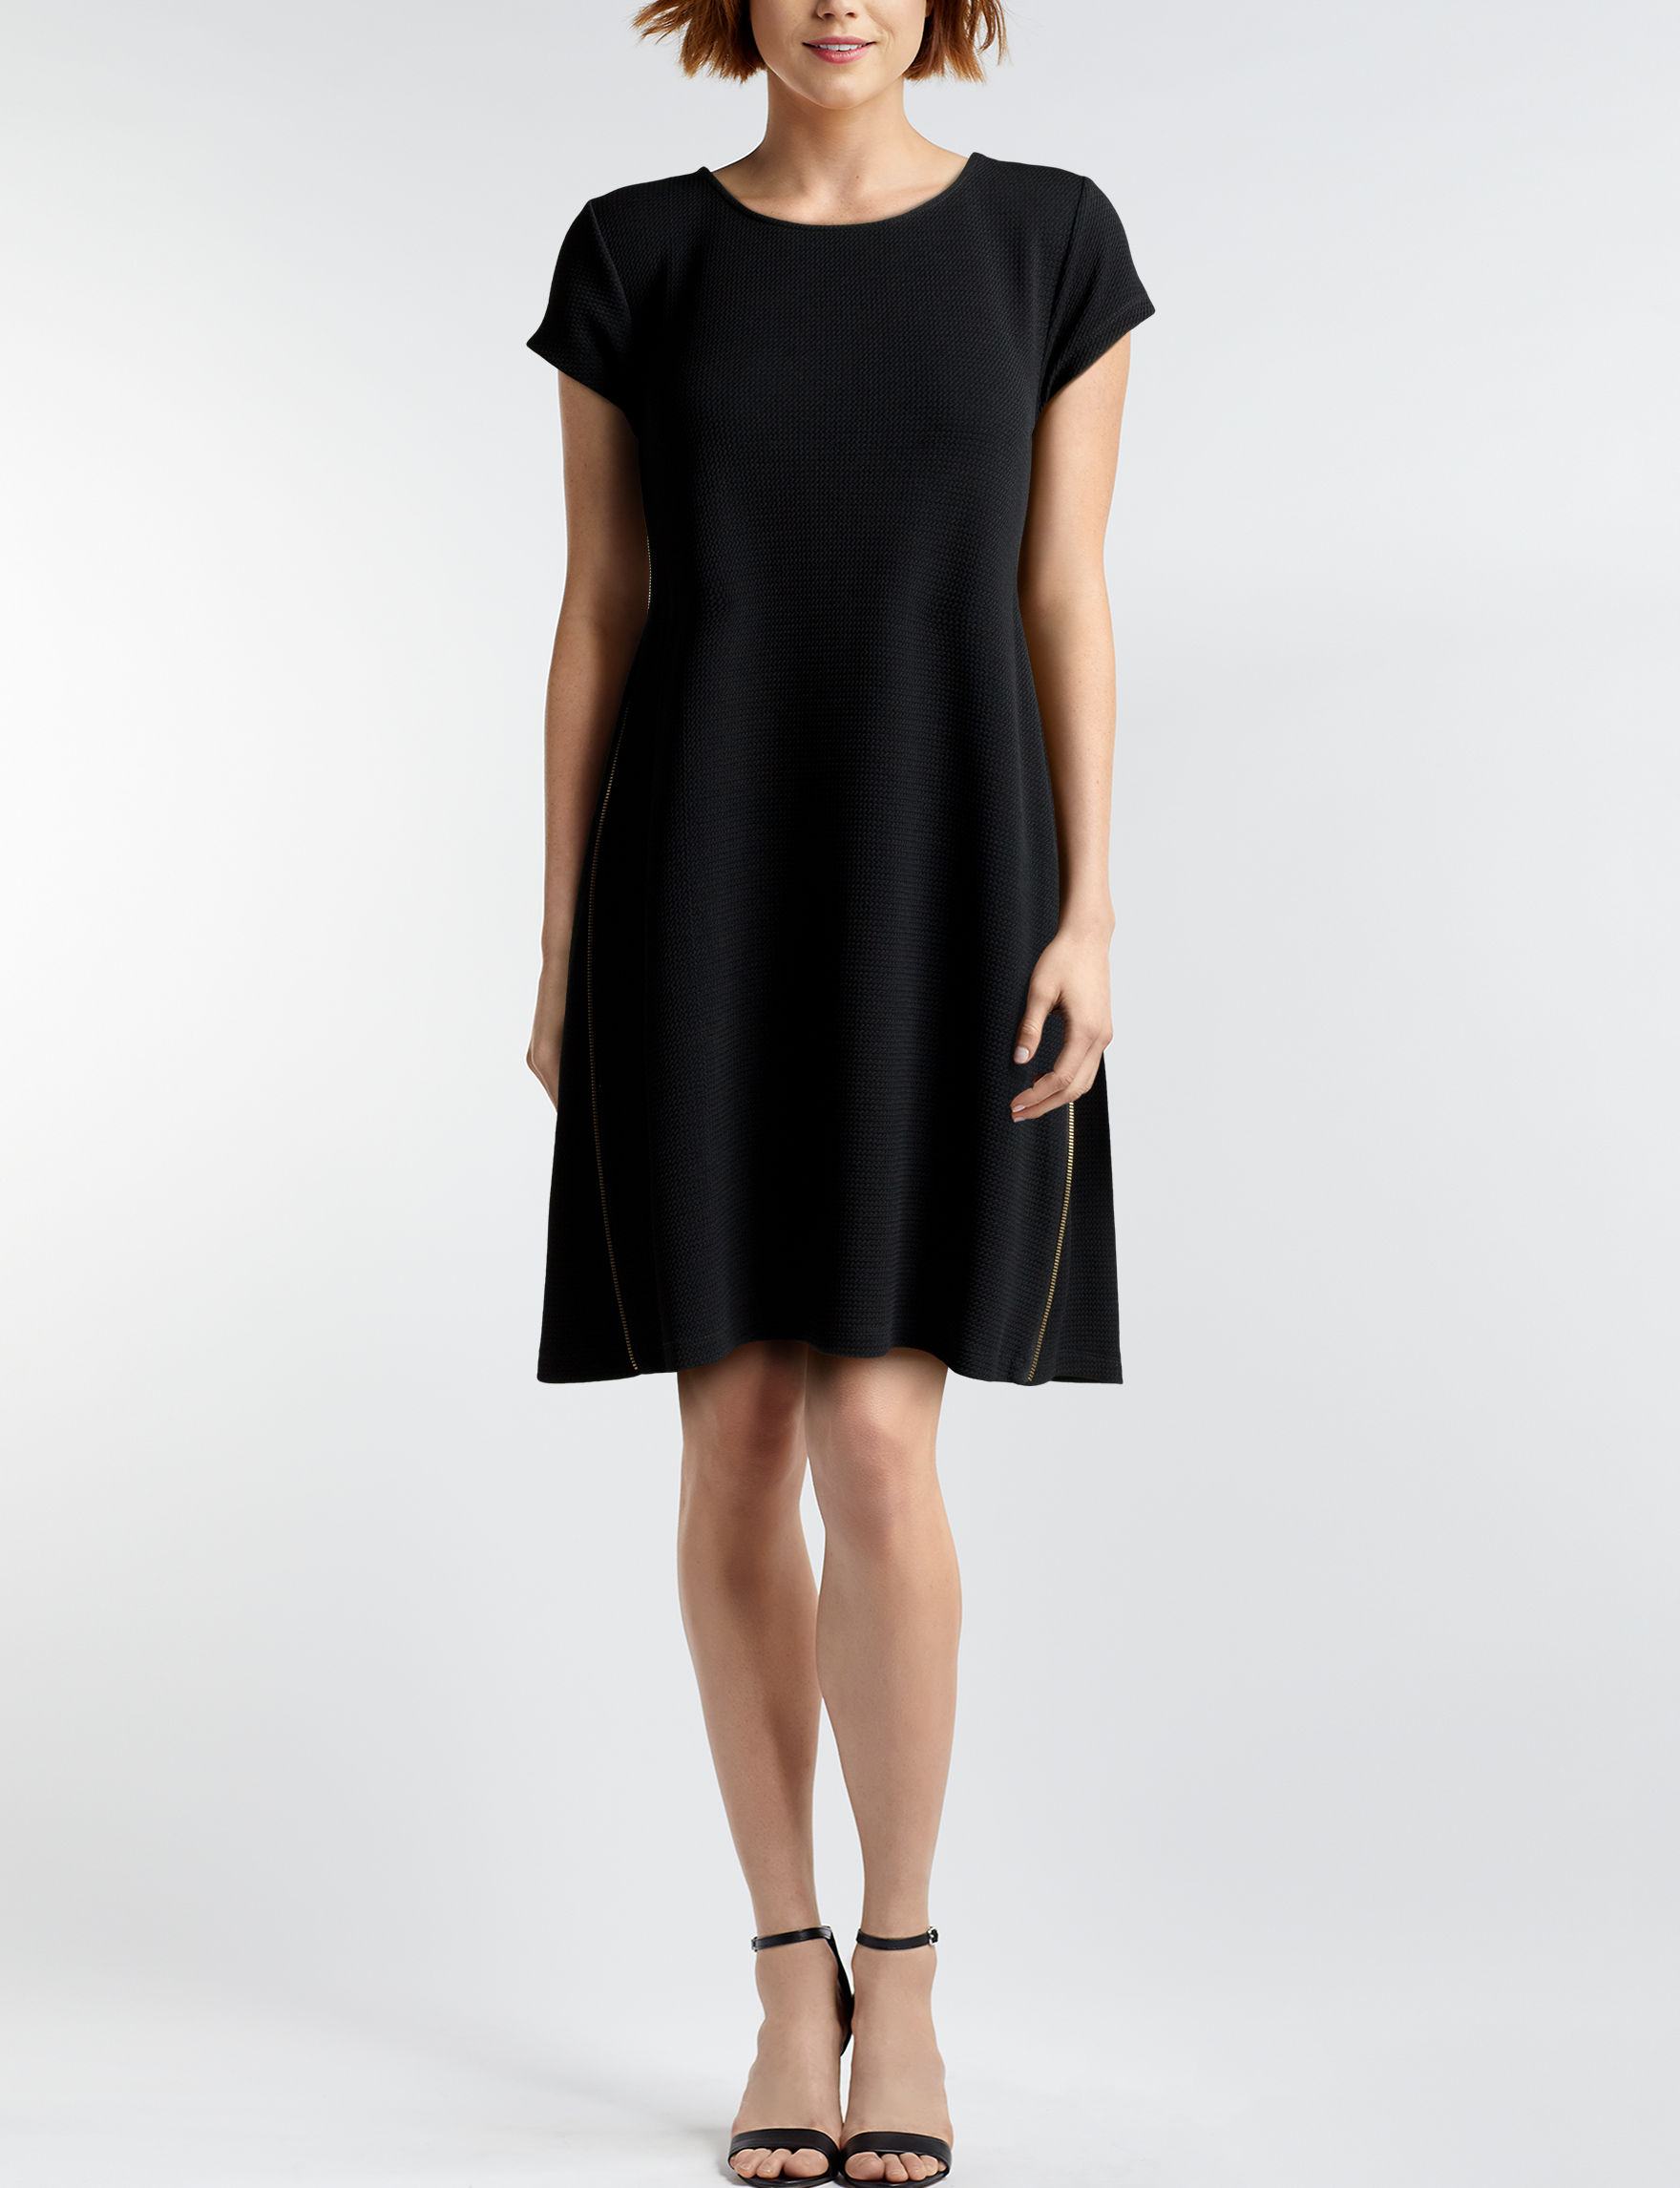 Nina Leonard Black Everyday & Casual Shift Dresses